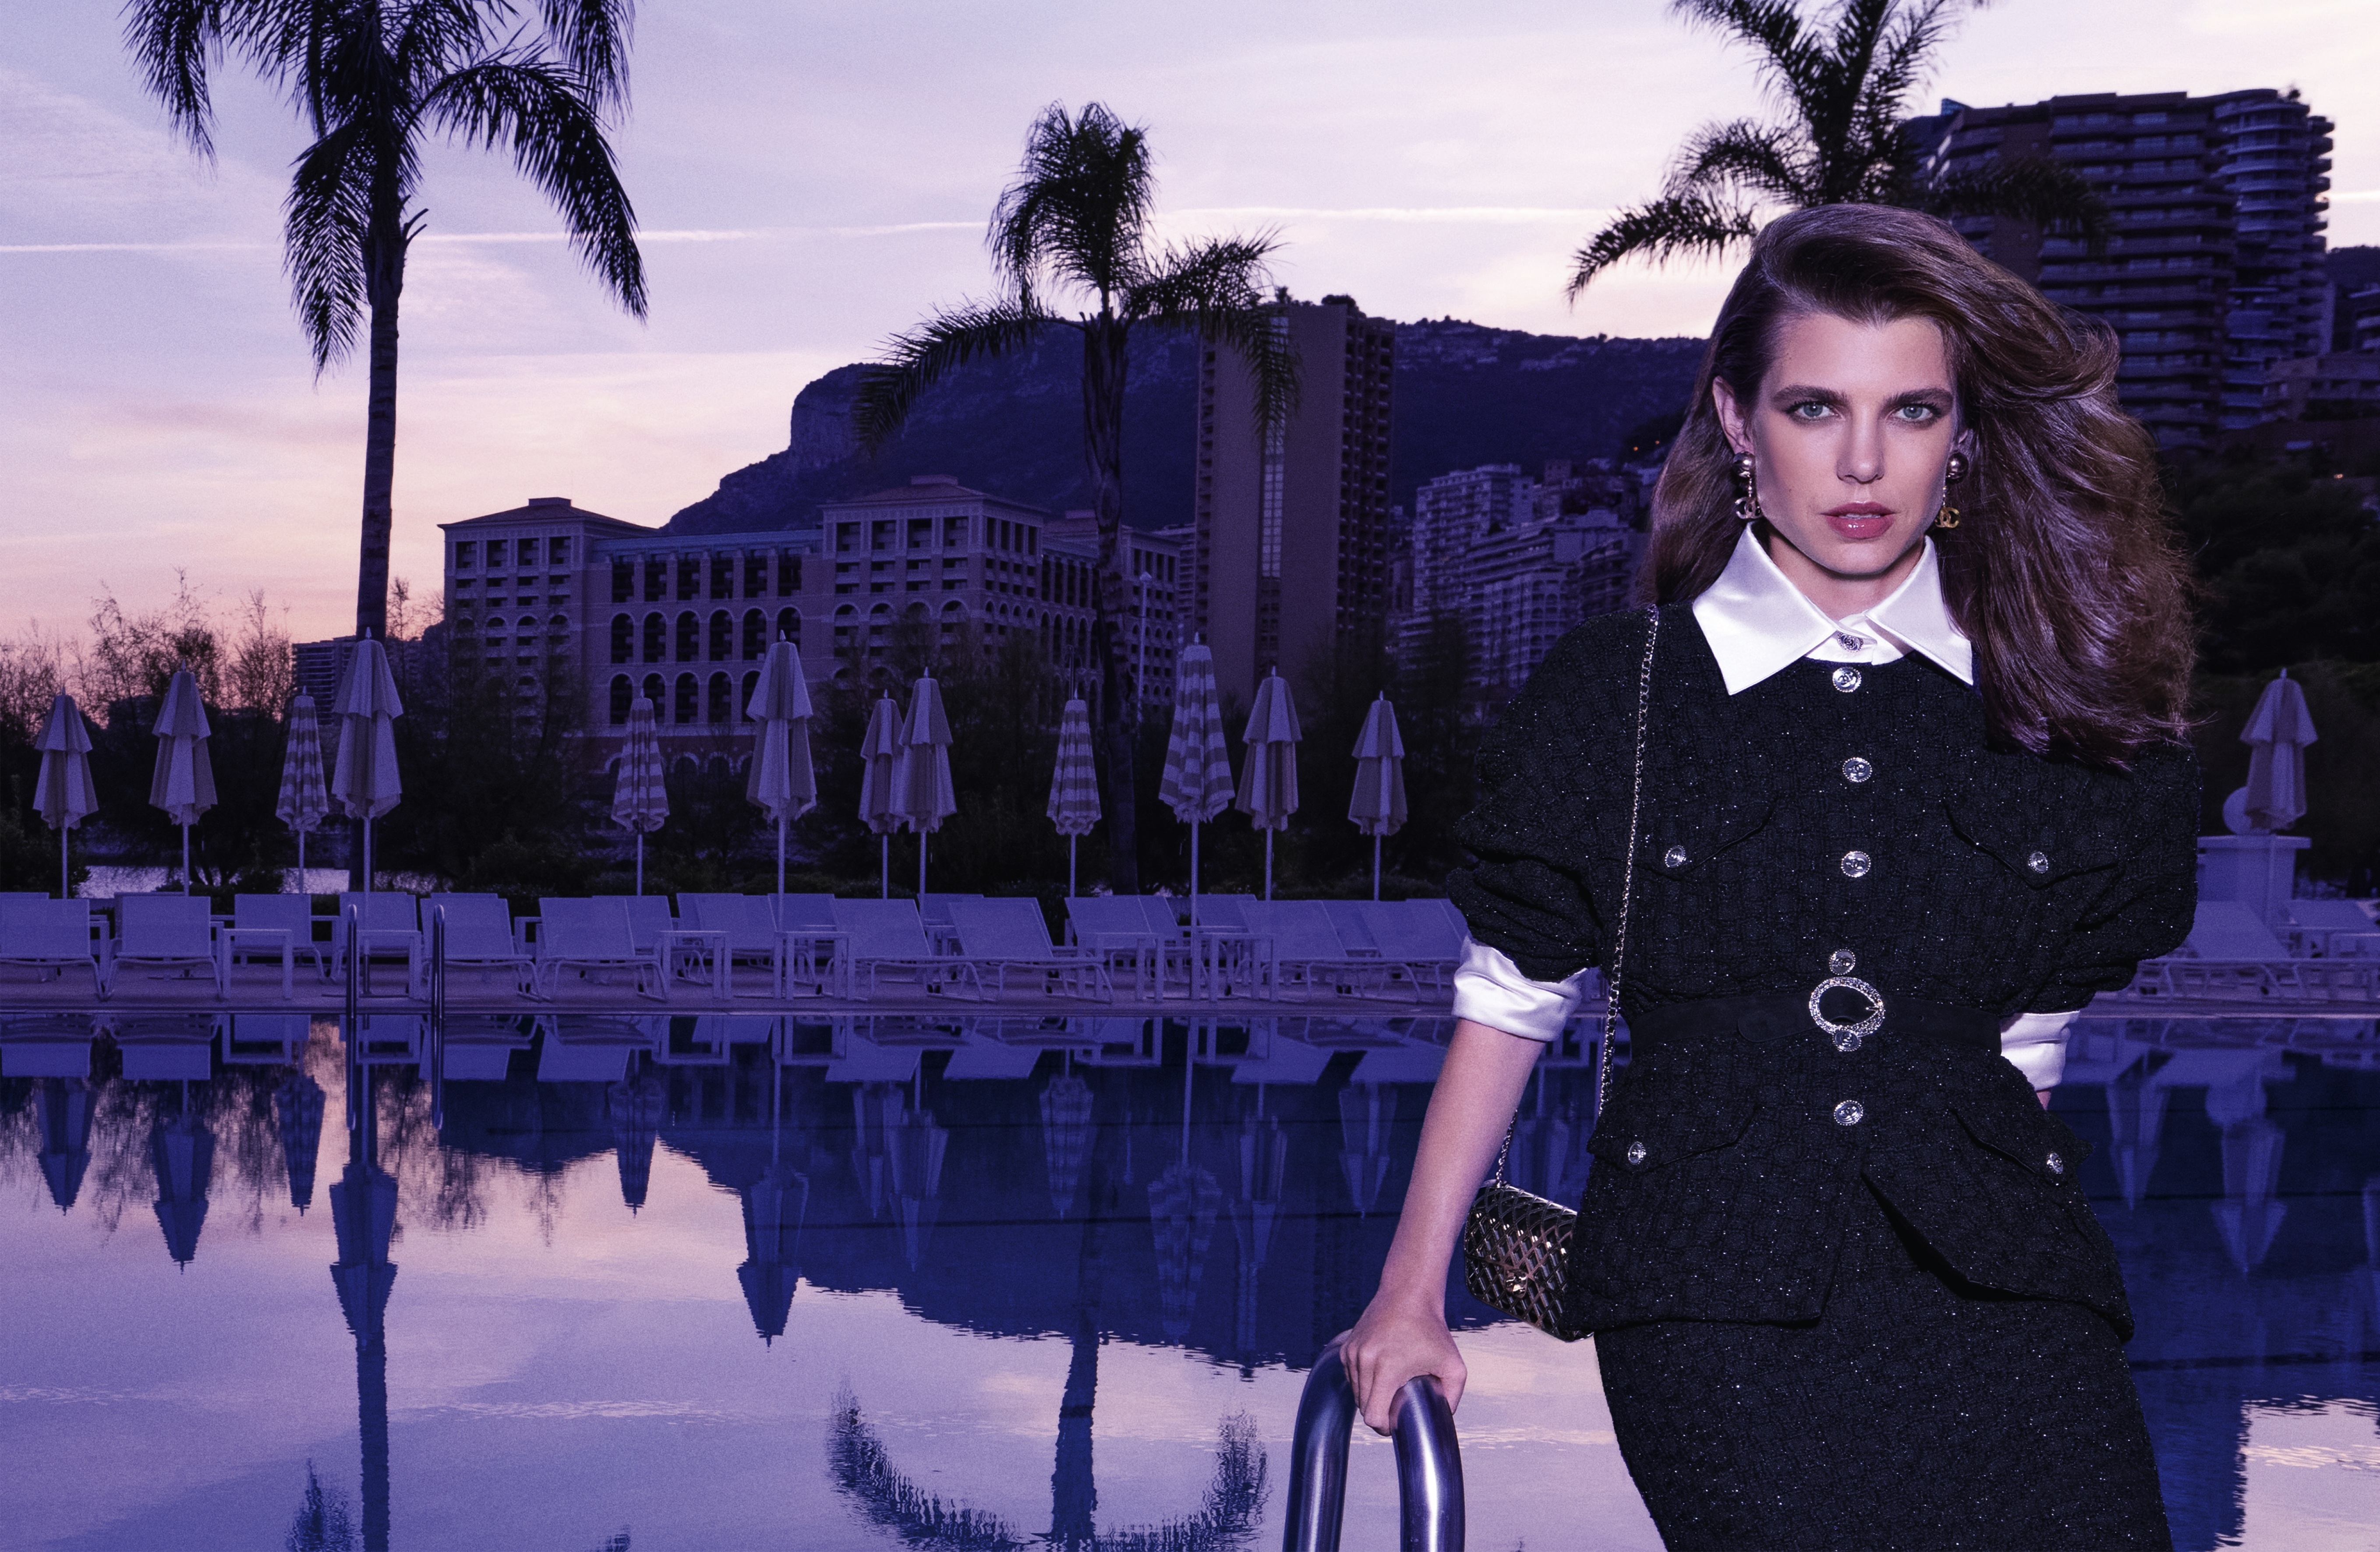 Charlotte Casiraghi in Chanel's spring 2021 advertising campaign.